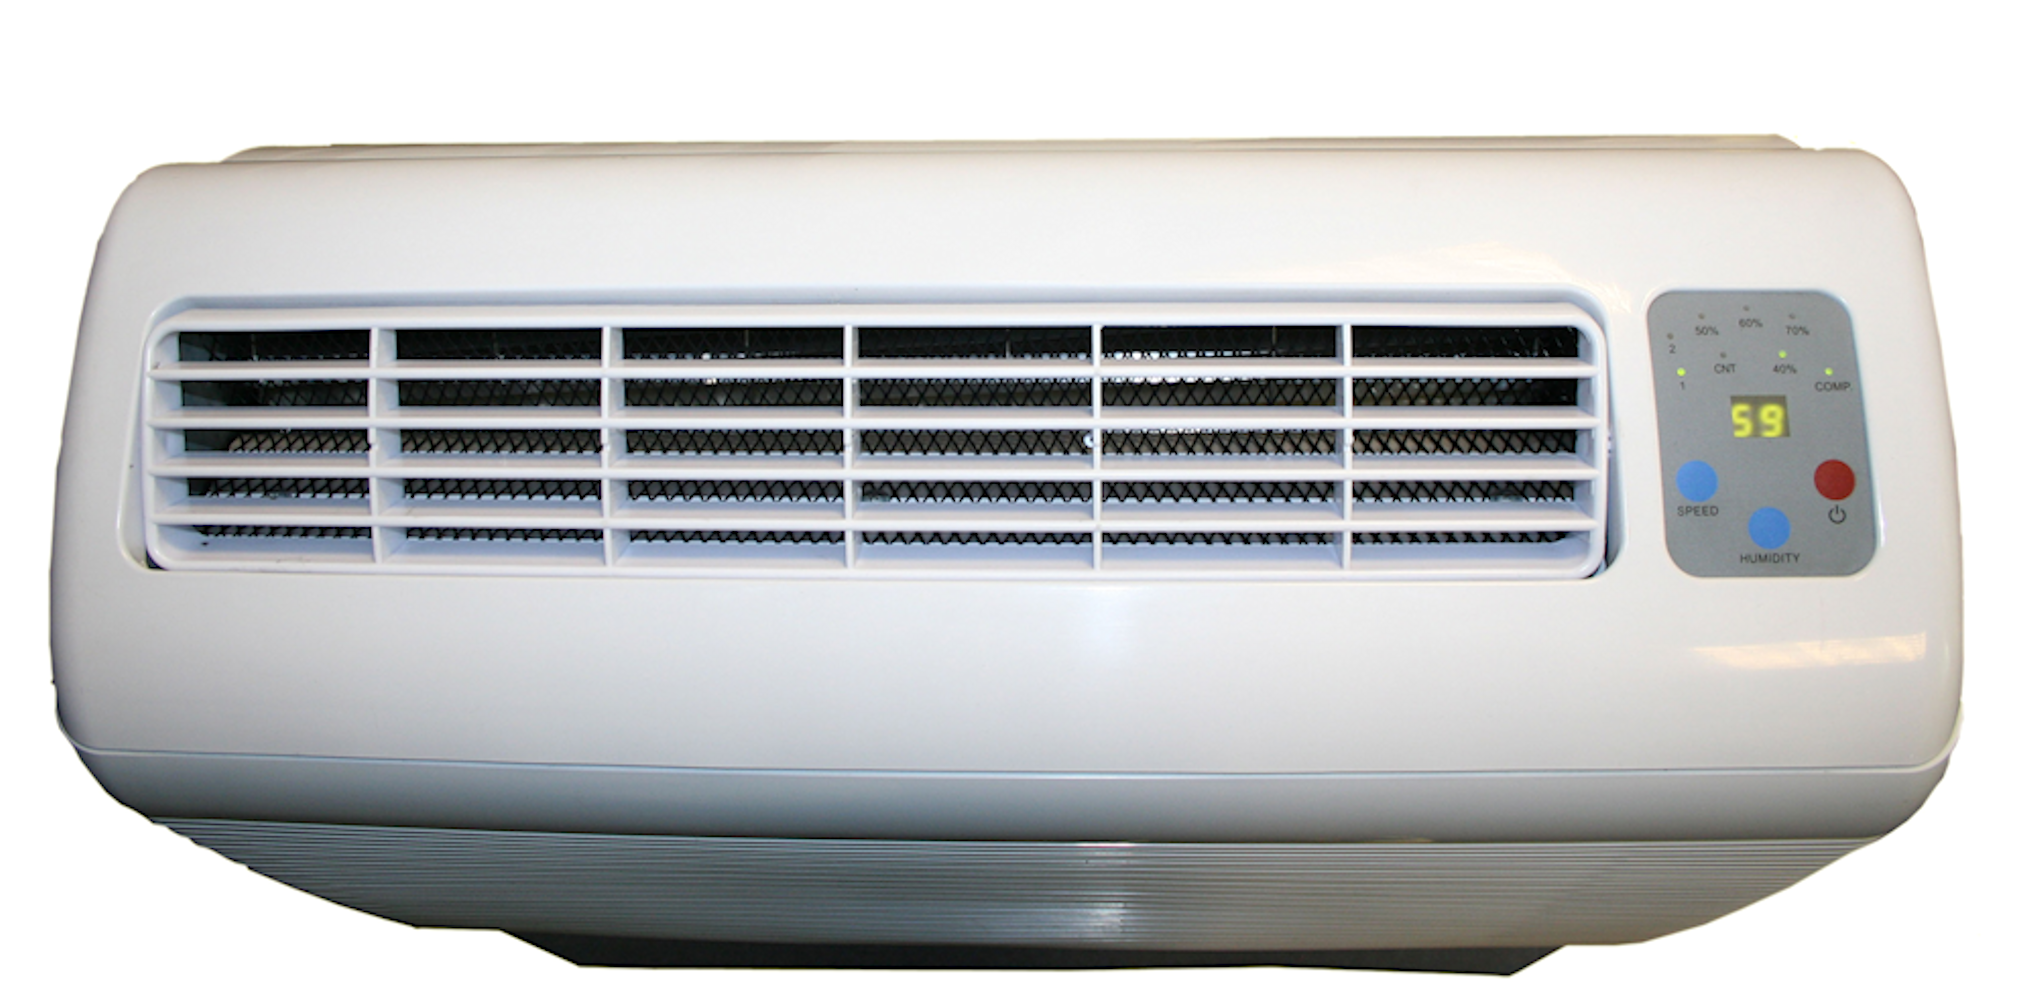 d850 top view dehumidifiers by Ecor Pro